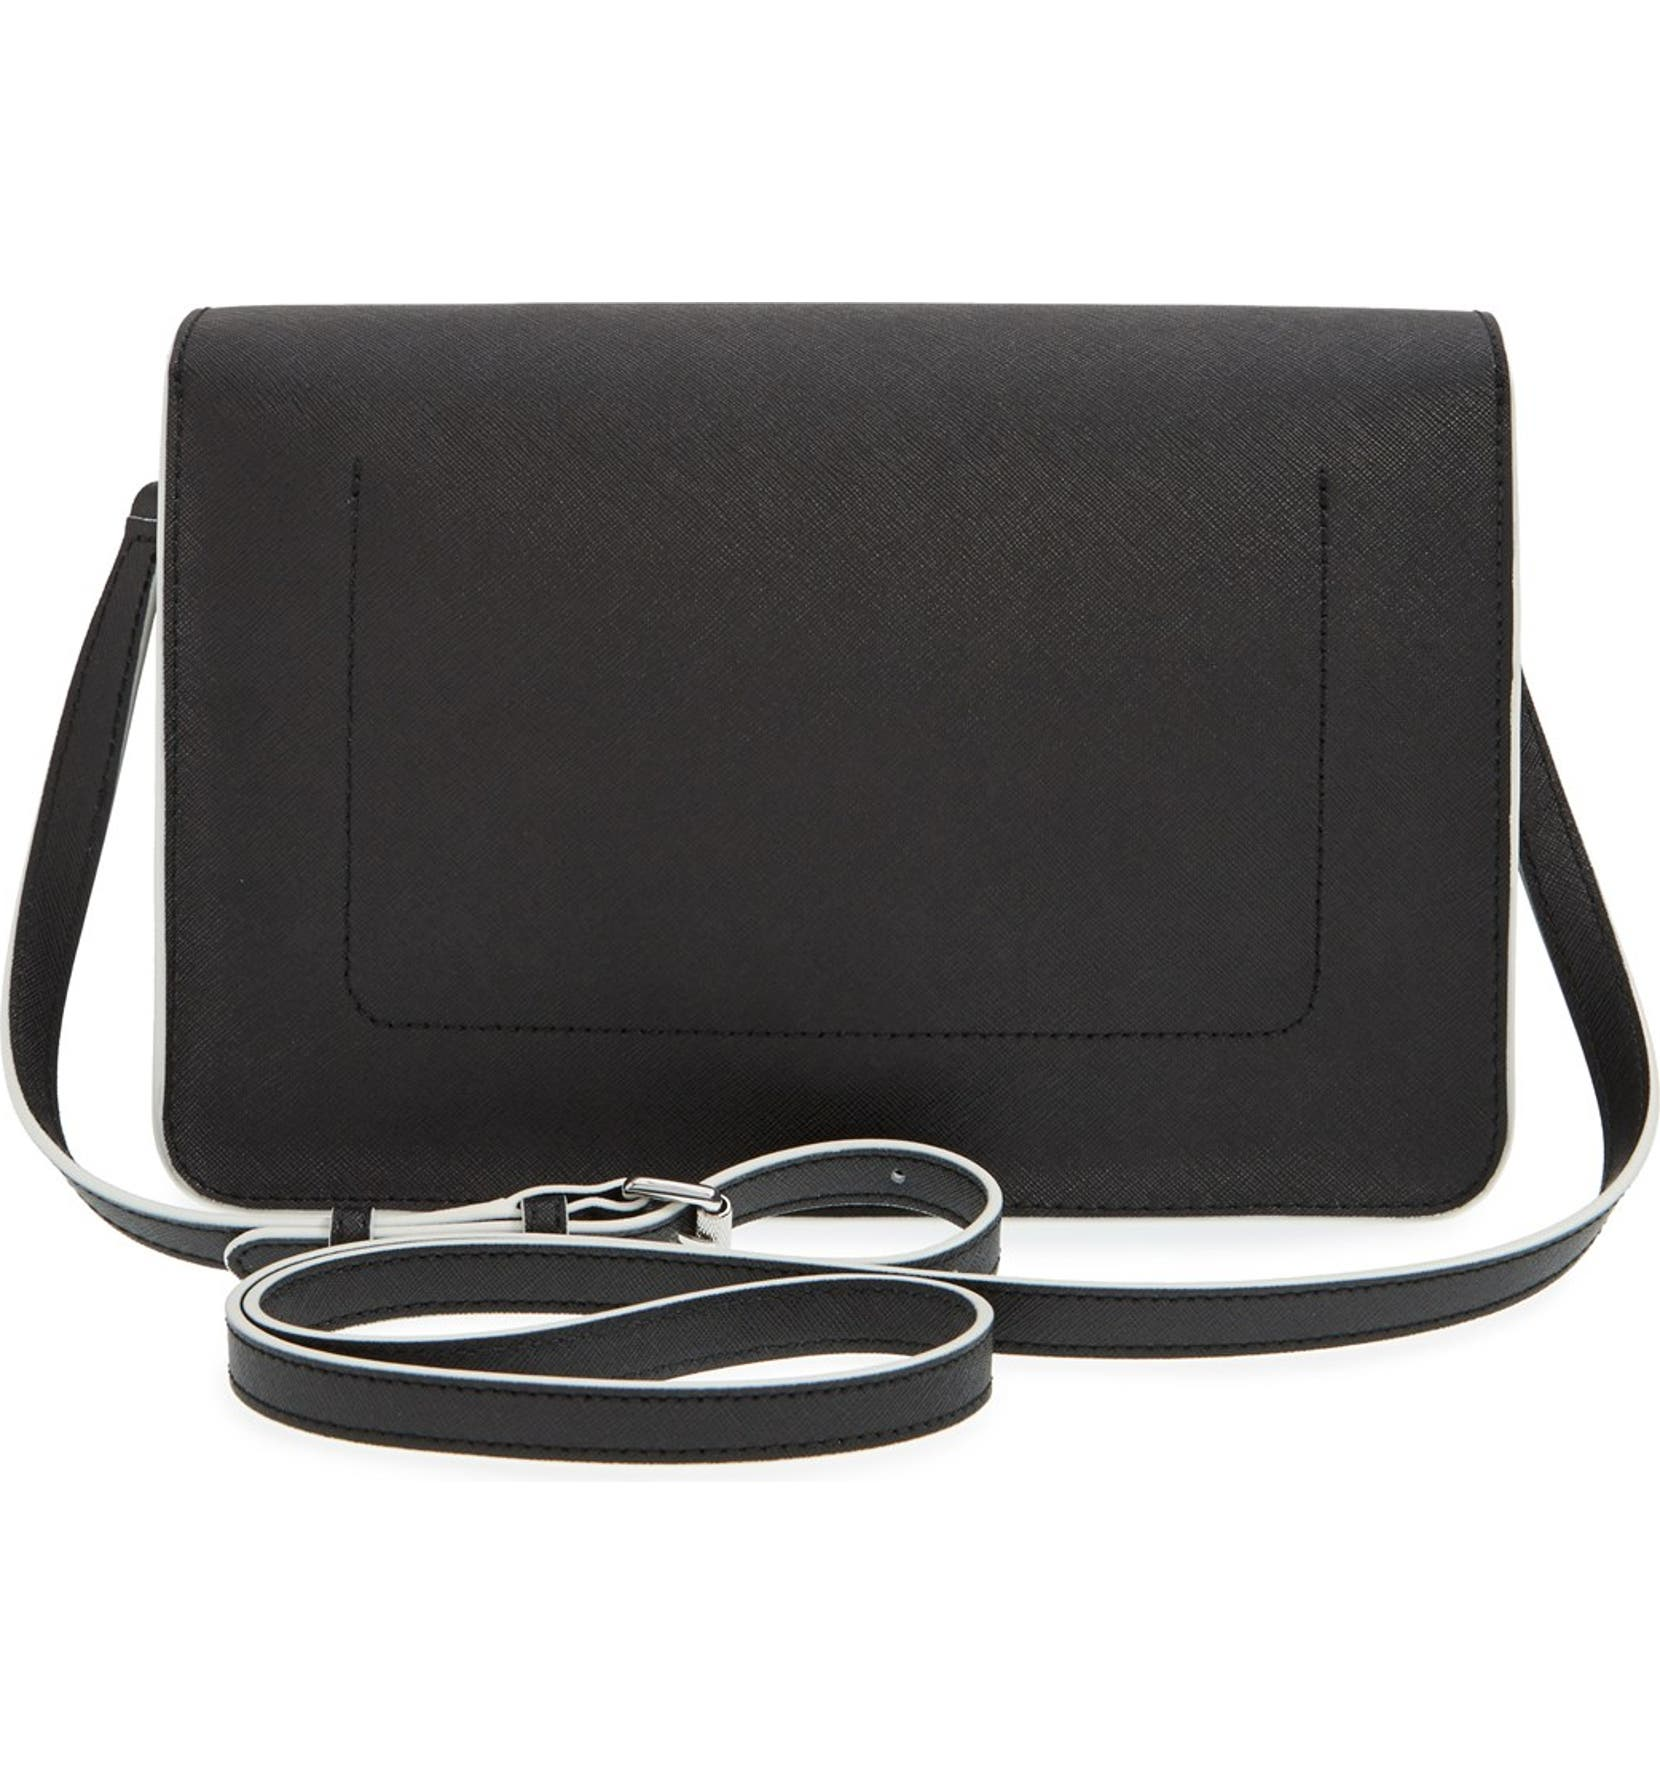 7083d9cac MARC BY MARC JACOBS 'Lip Lock' Coated Leather Messenger Bag   Nordstrom